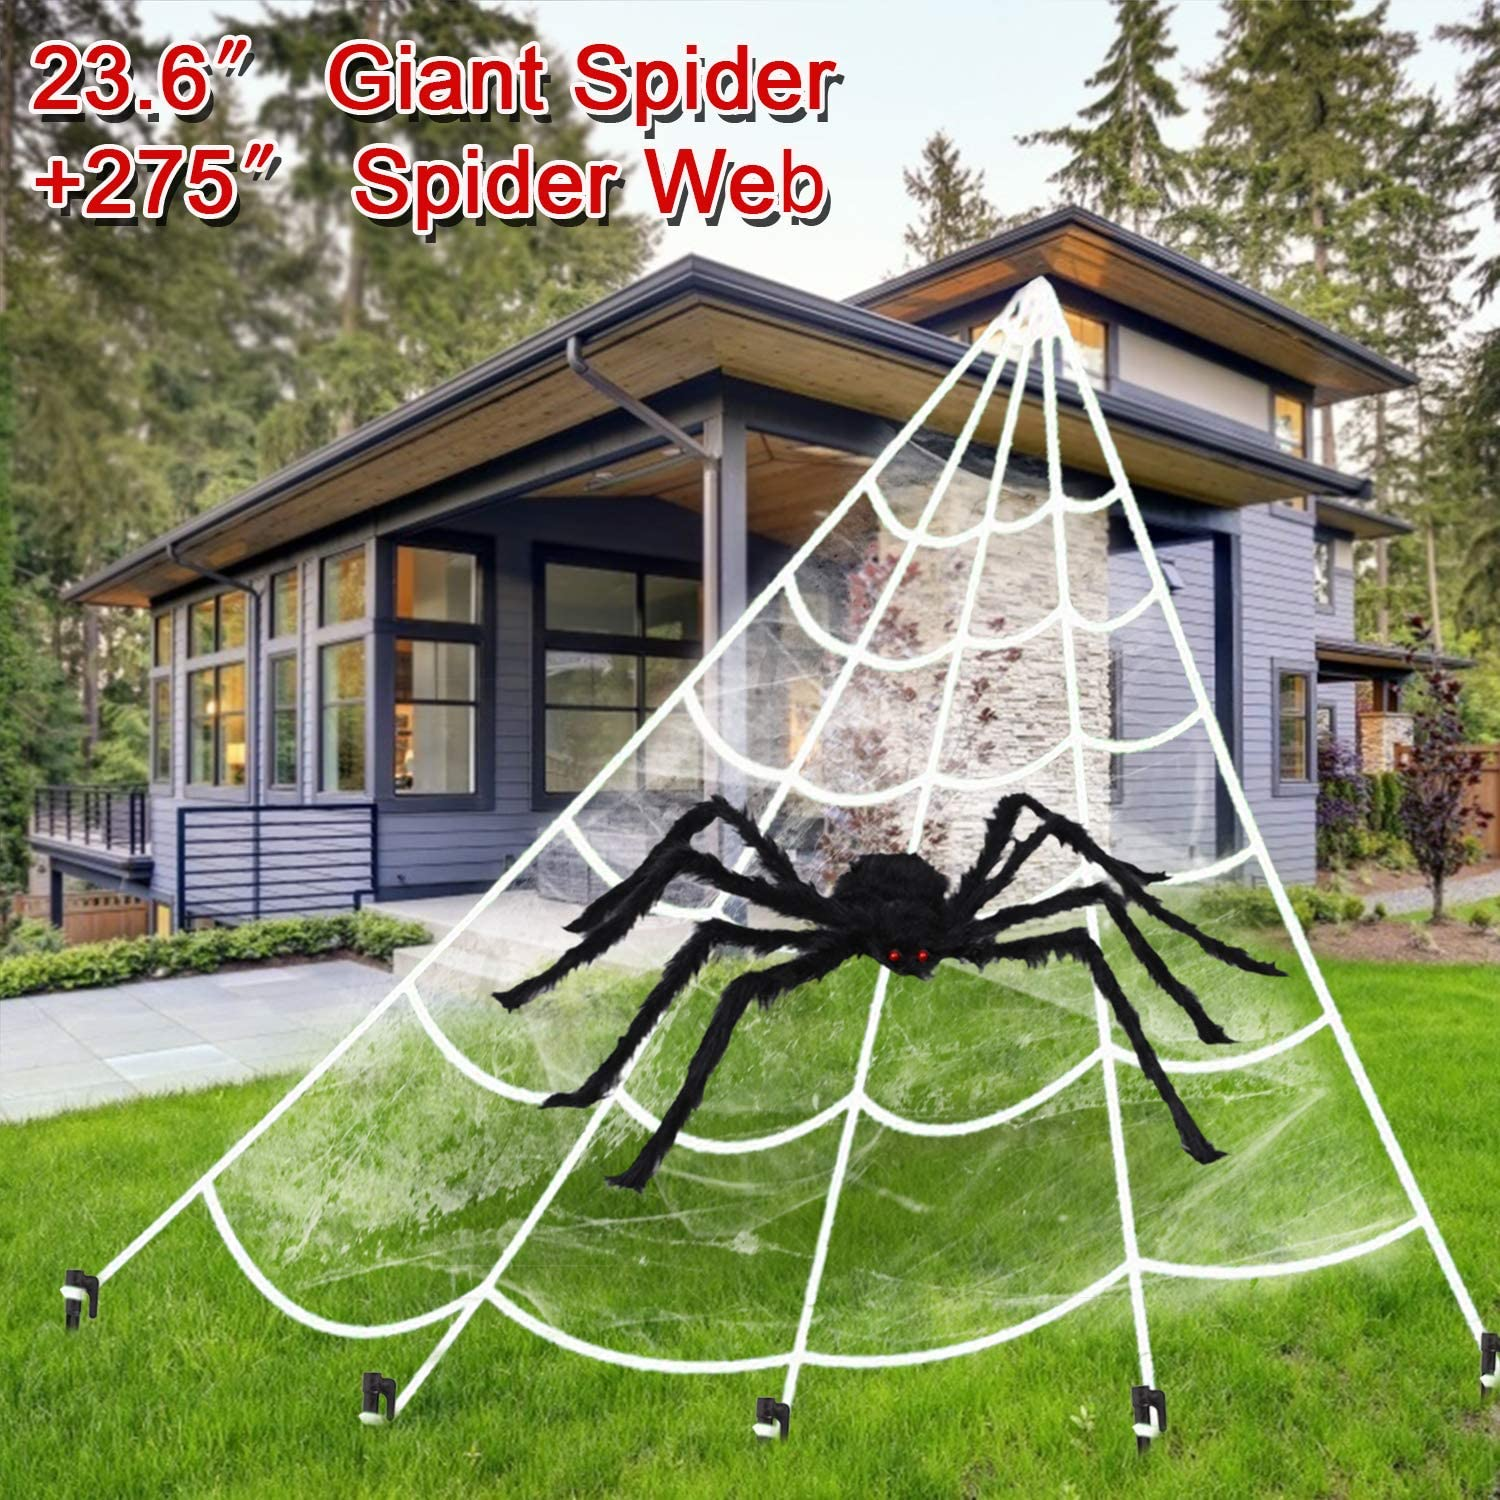 "Funitsv Halloween Gaint Spider Web 275"",23.6"" Hairy Fade Spider,Triangular Mega Spider Web with Super Stretch Cobweb Set for Halloween Decor Outdoor Yard Door Decor"